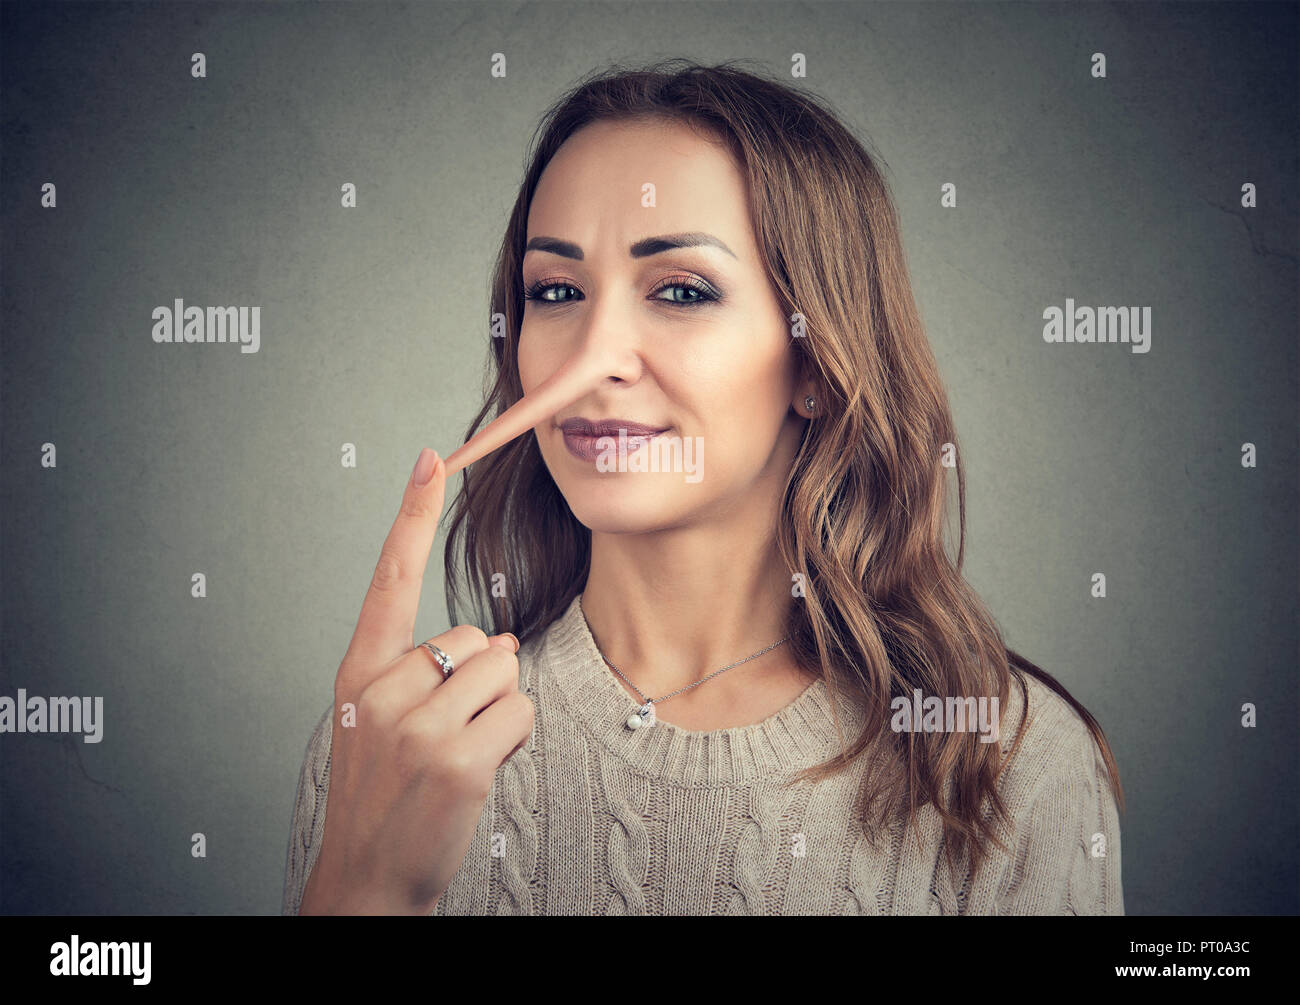 A liar sly woman with long nose - Stock Image